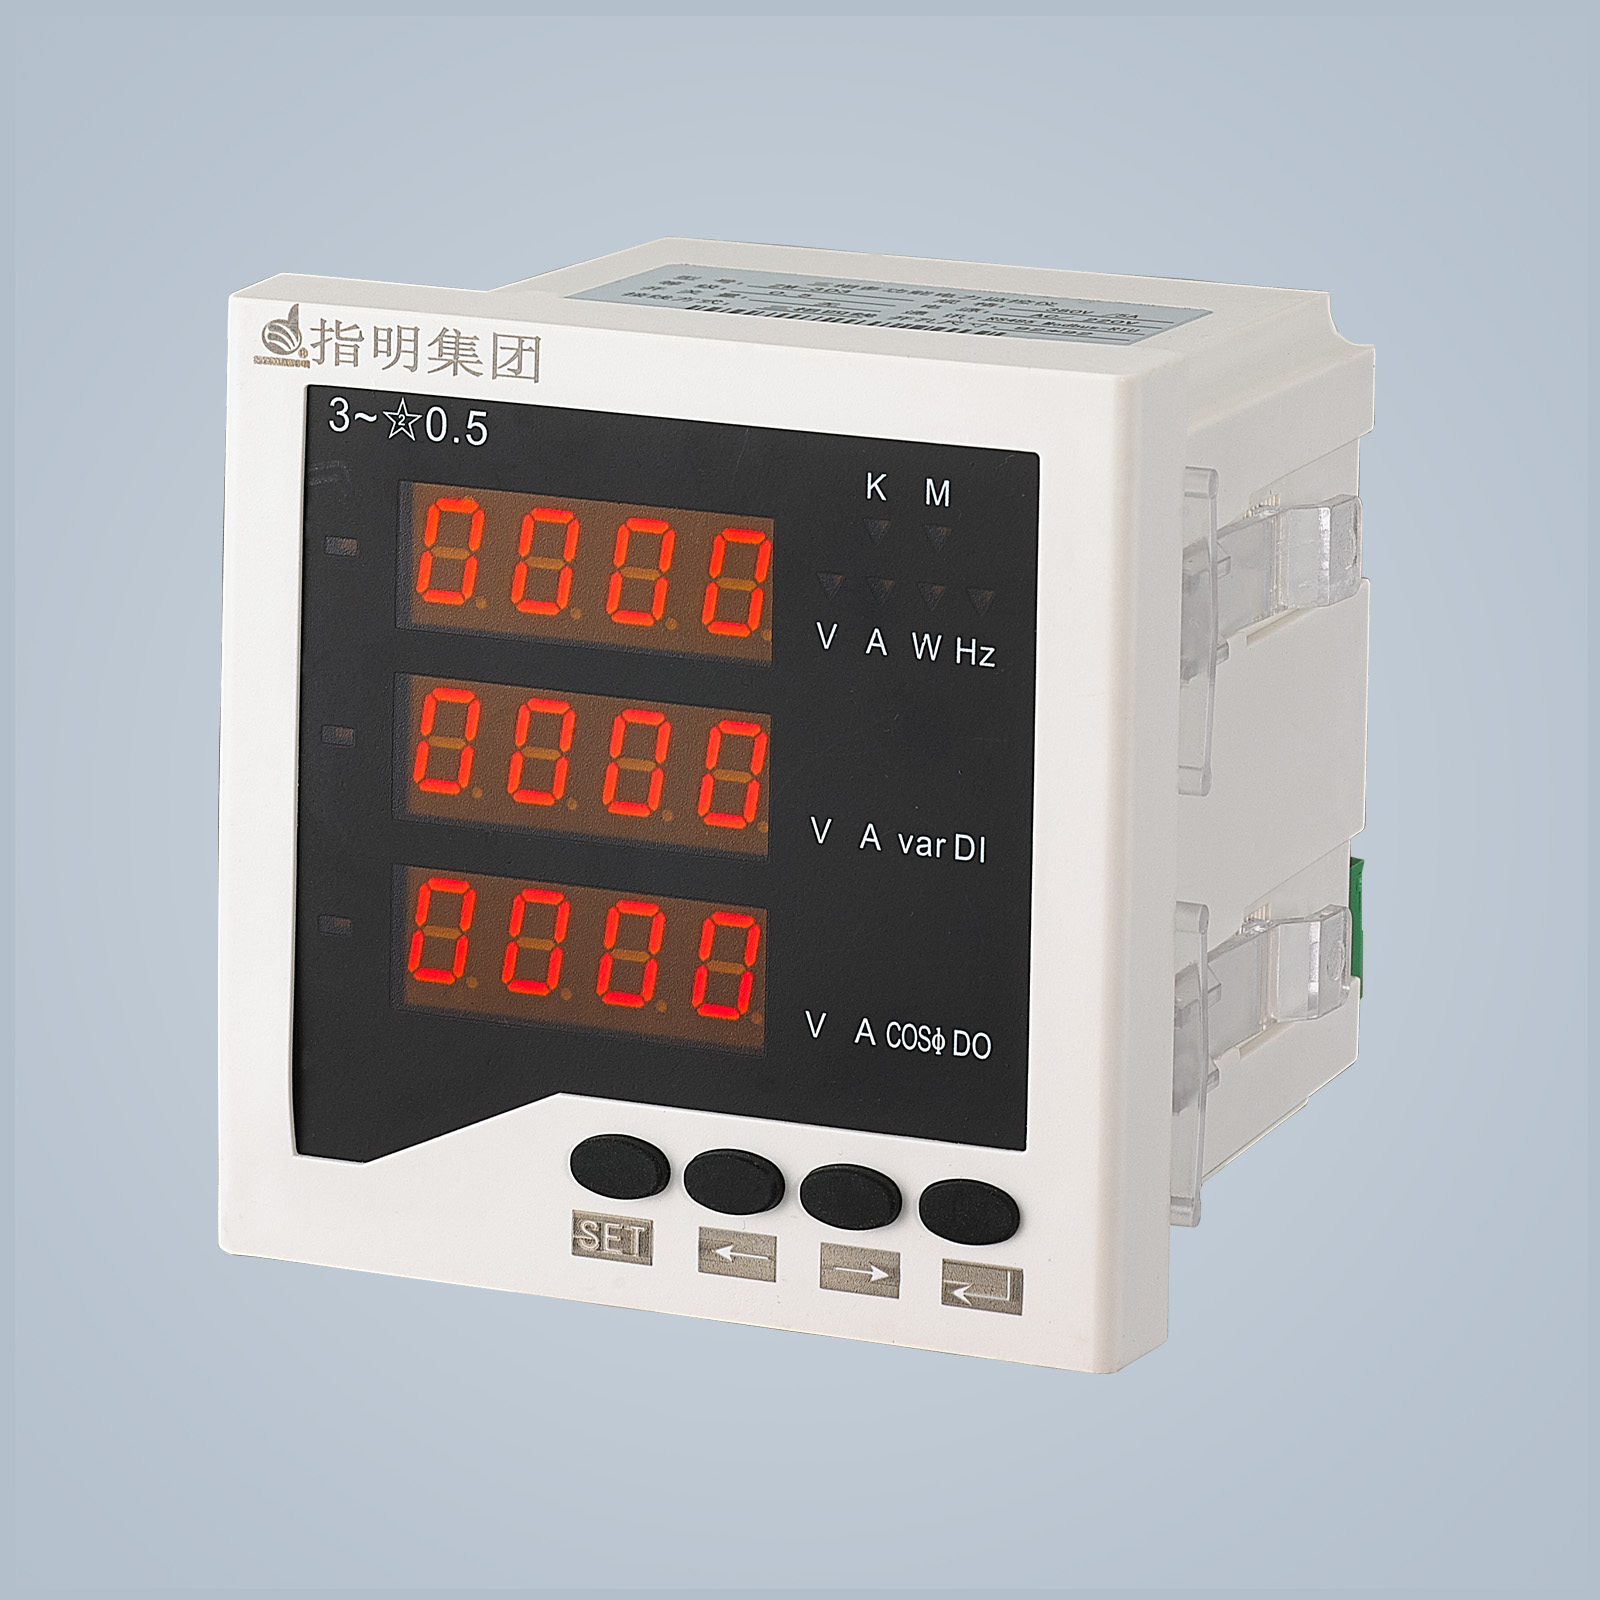 LED Series Multi-function monitoring instrument